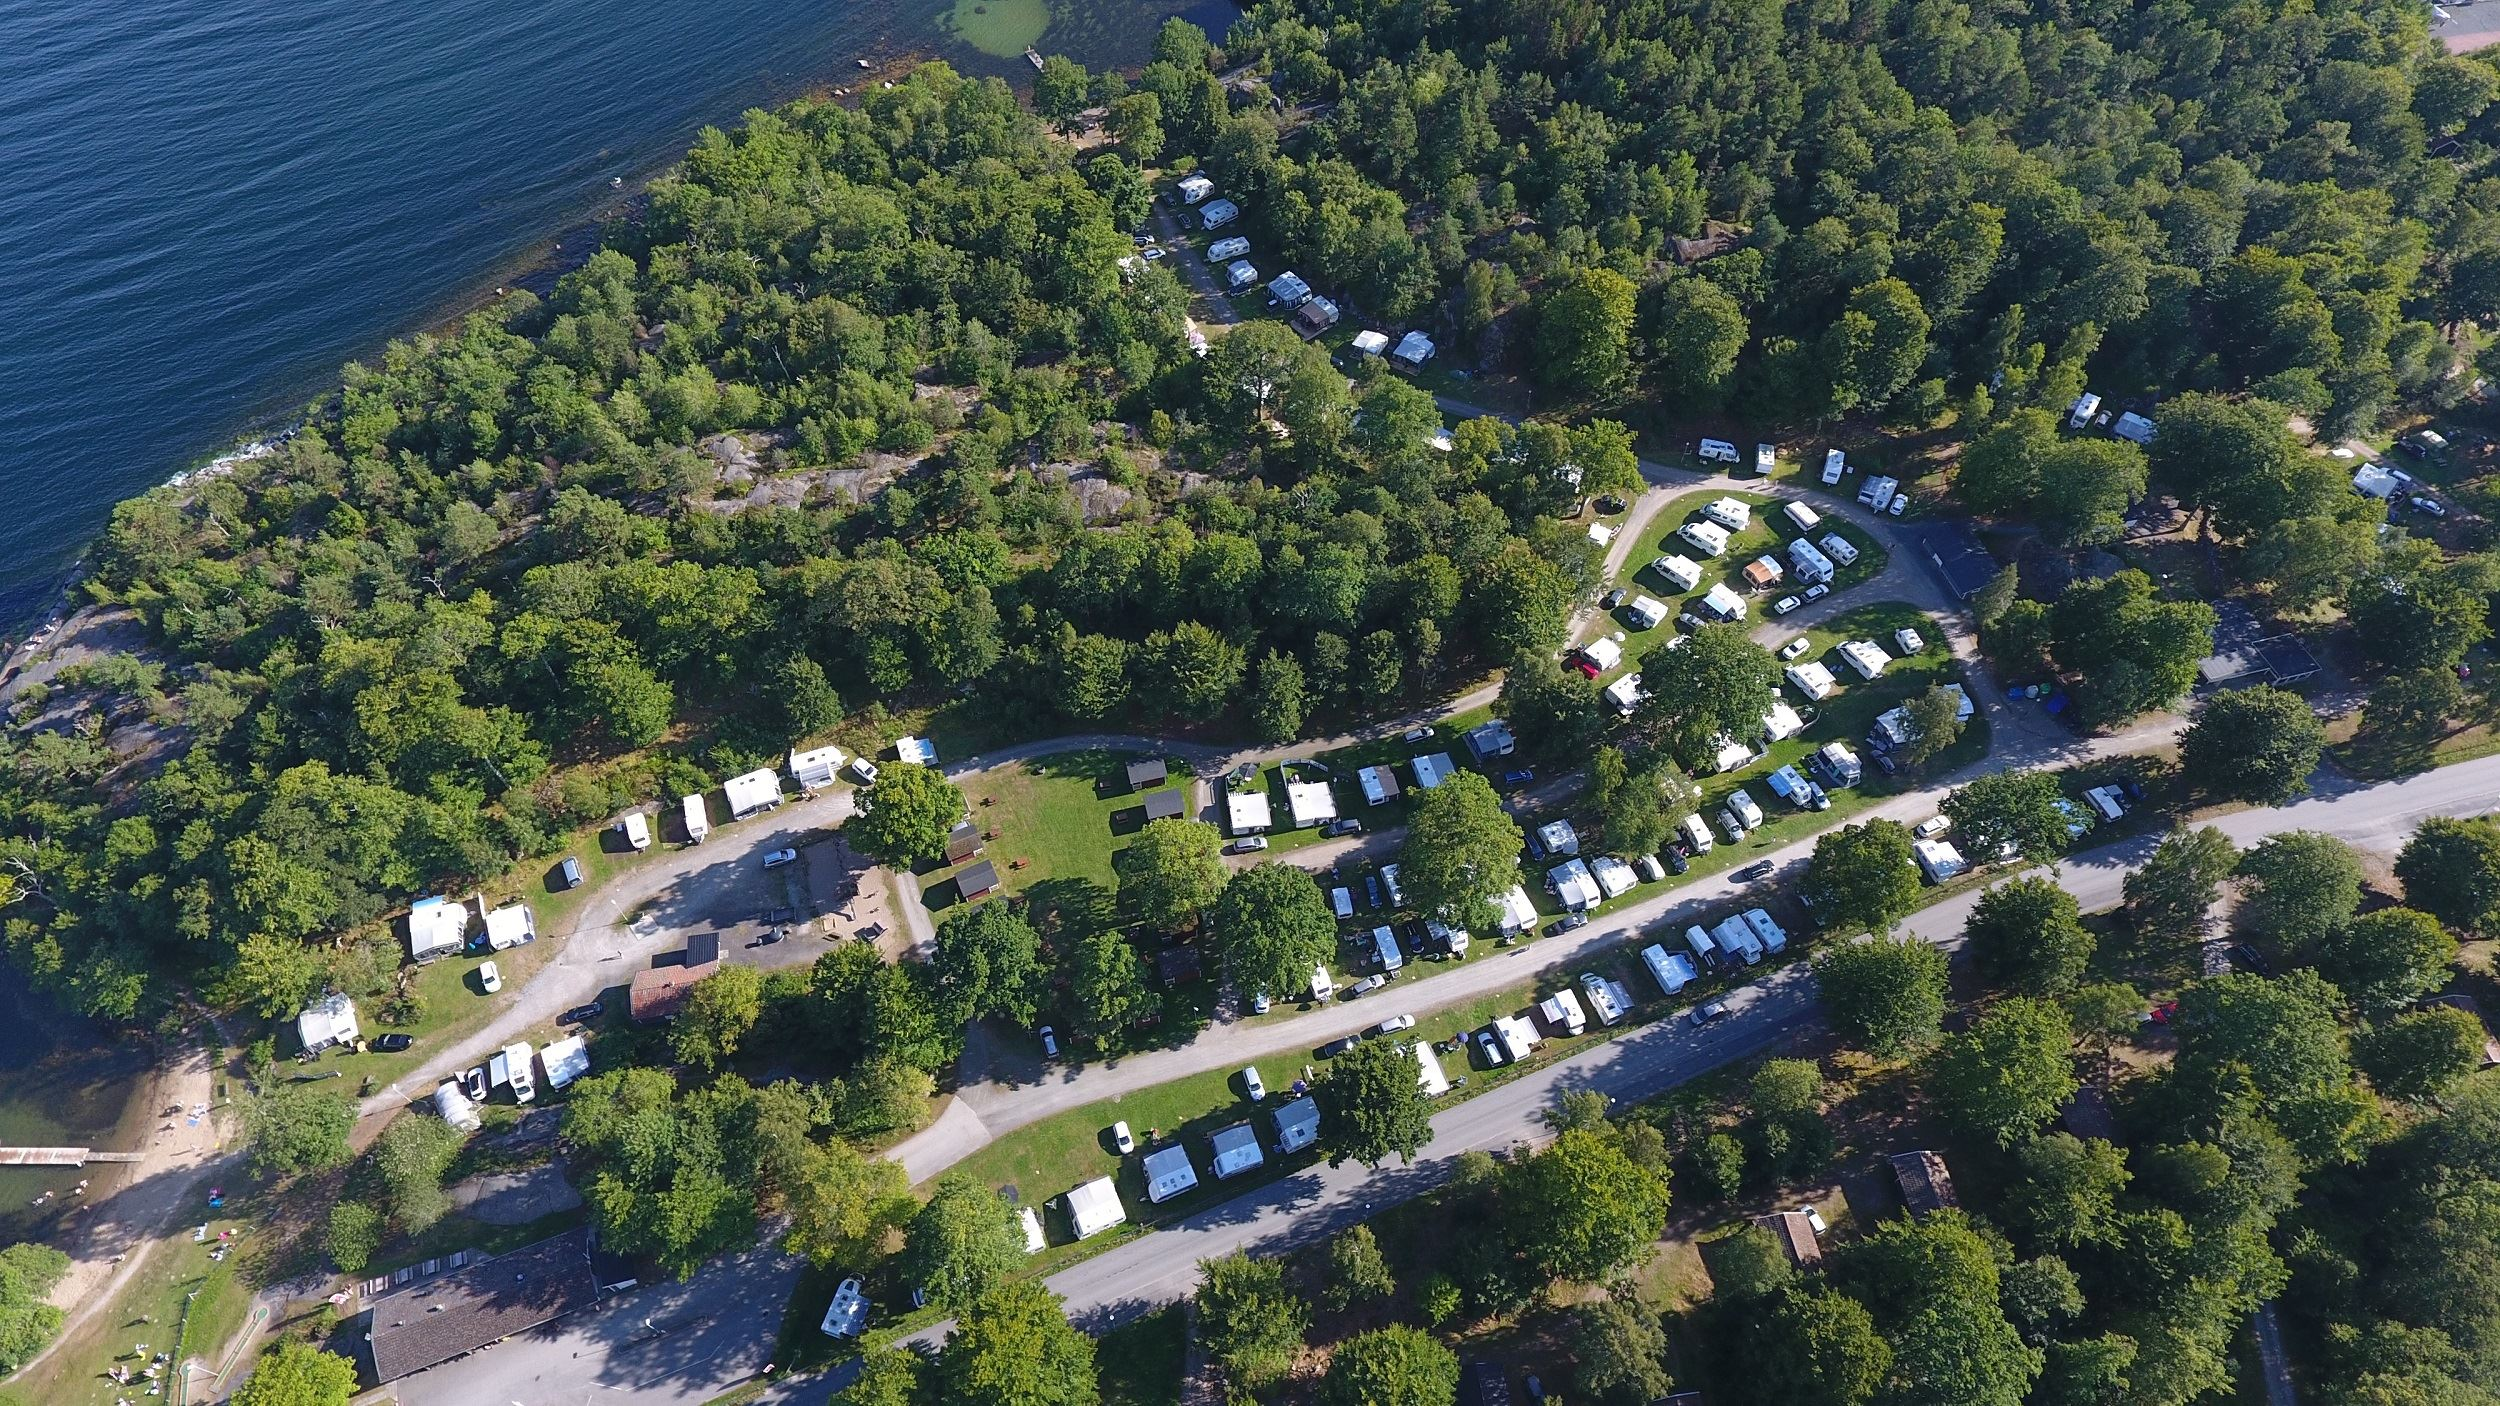 Kolleviks Camping /Cottages